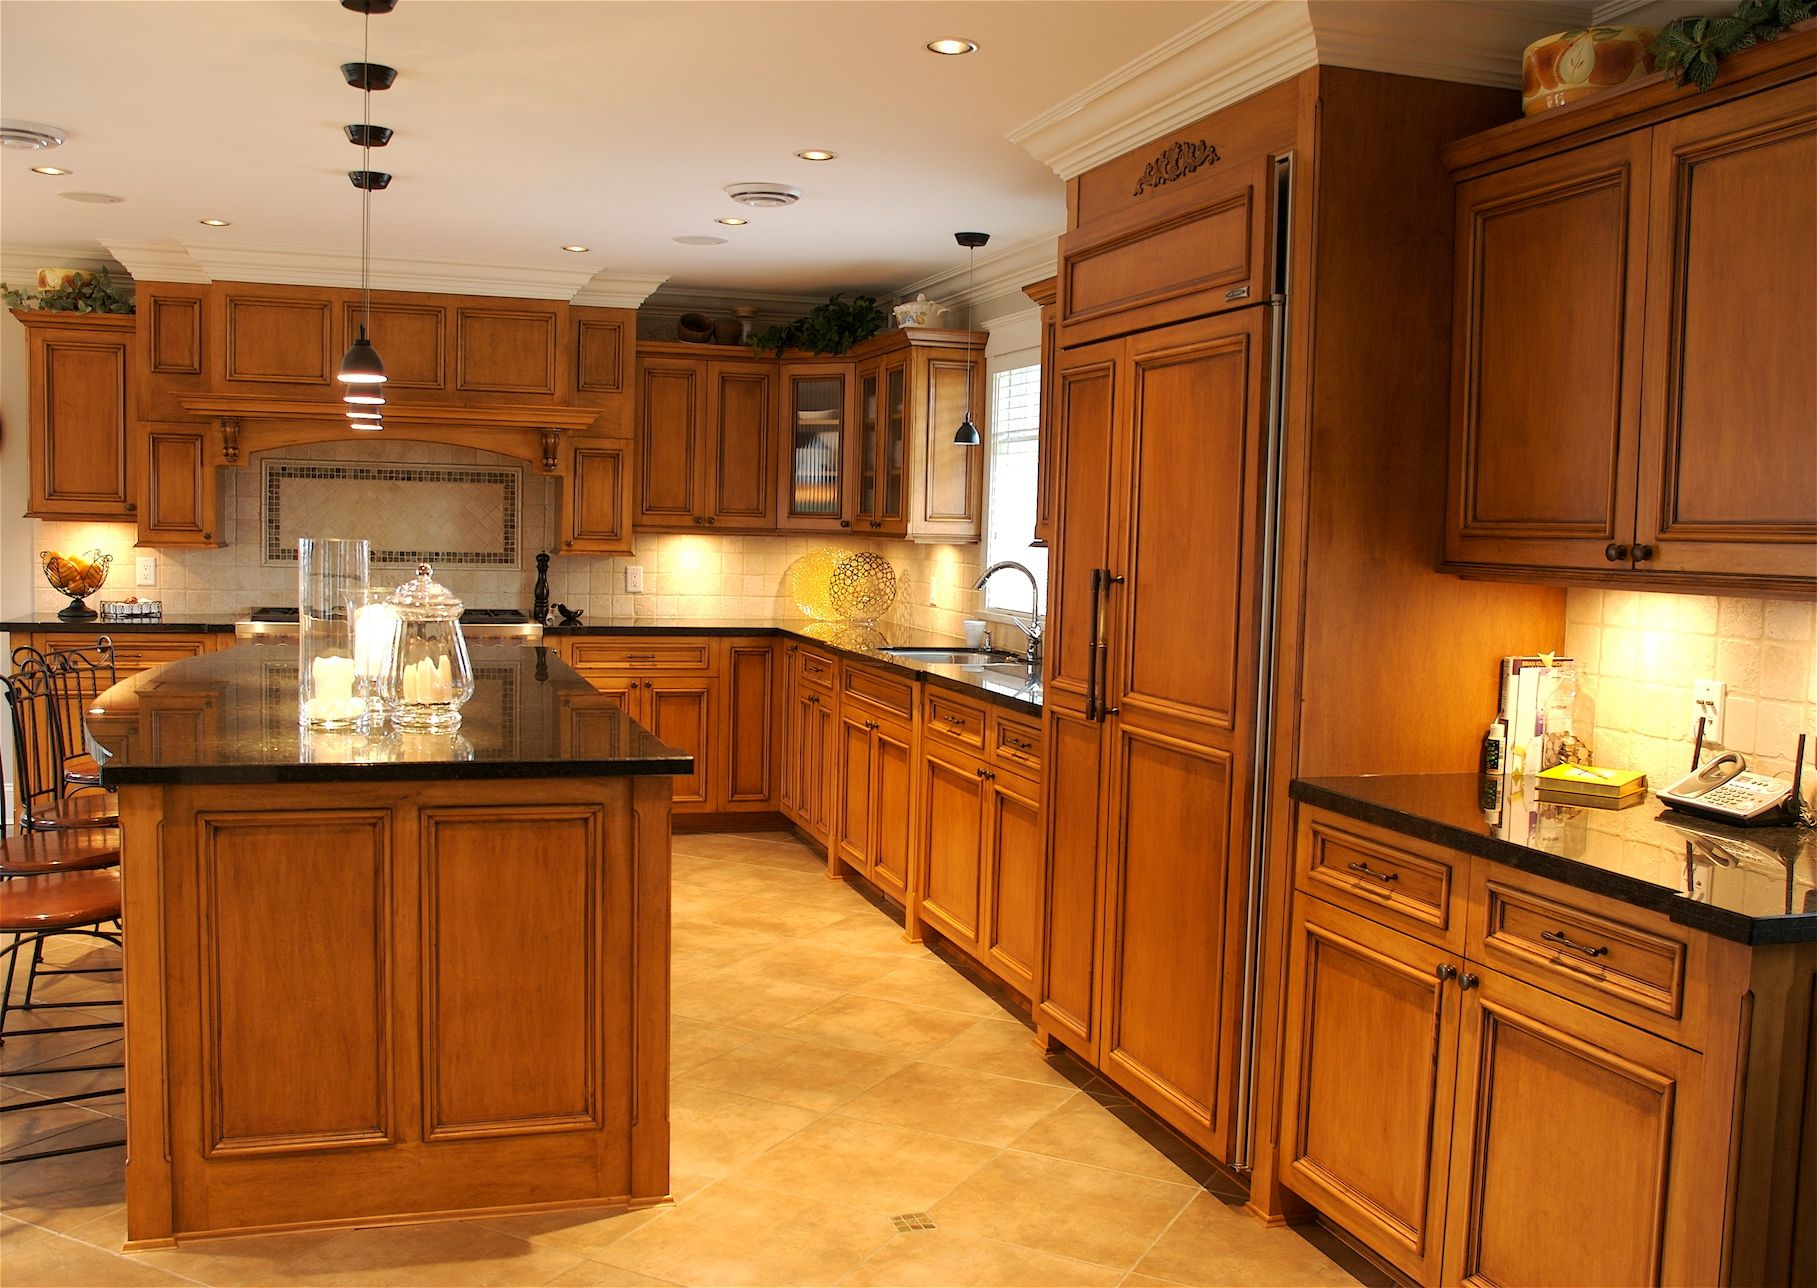 Maple cabinets with black countertop and light tile ... on Maple Cabinets With Black Countertops  id=11399